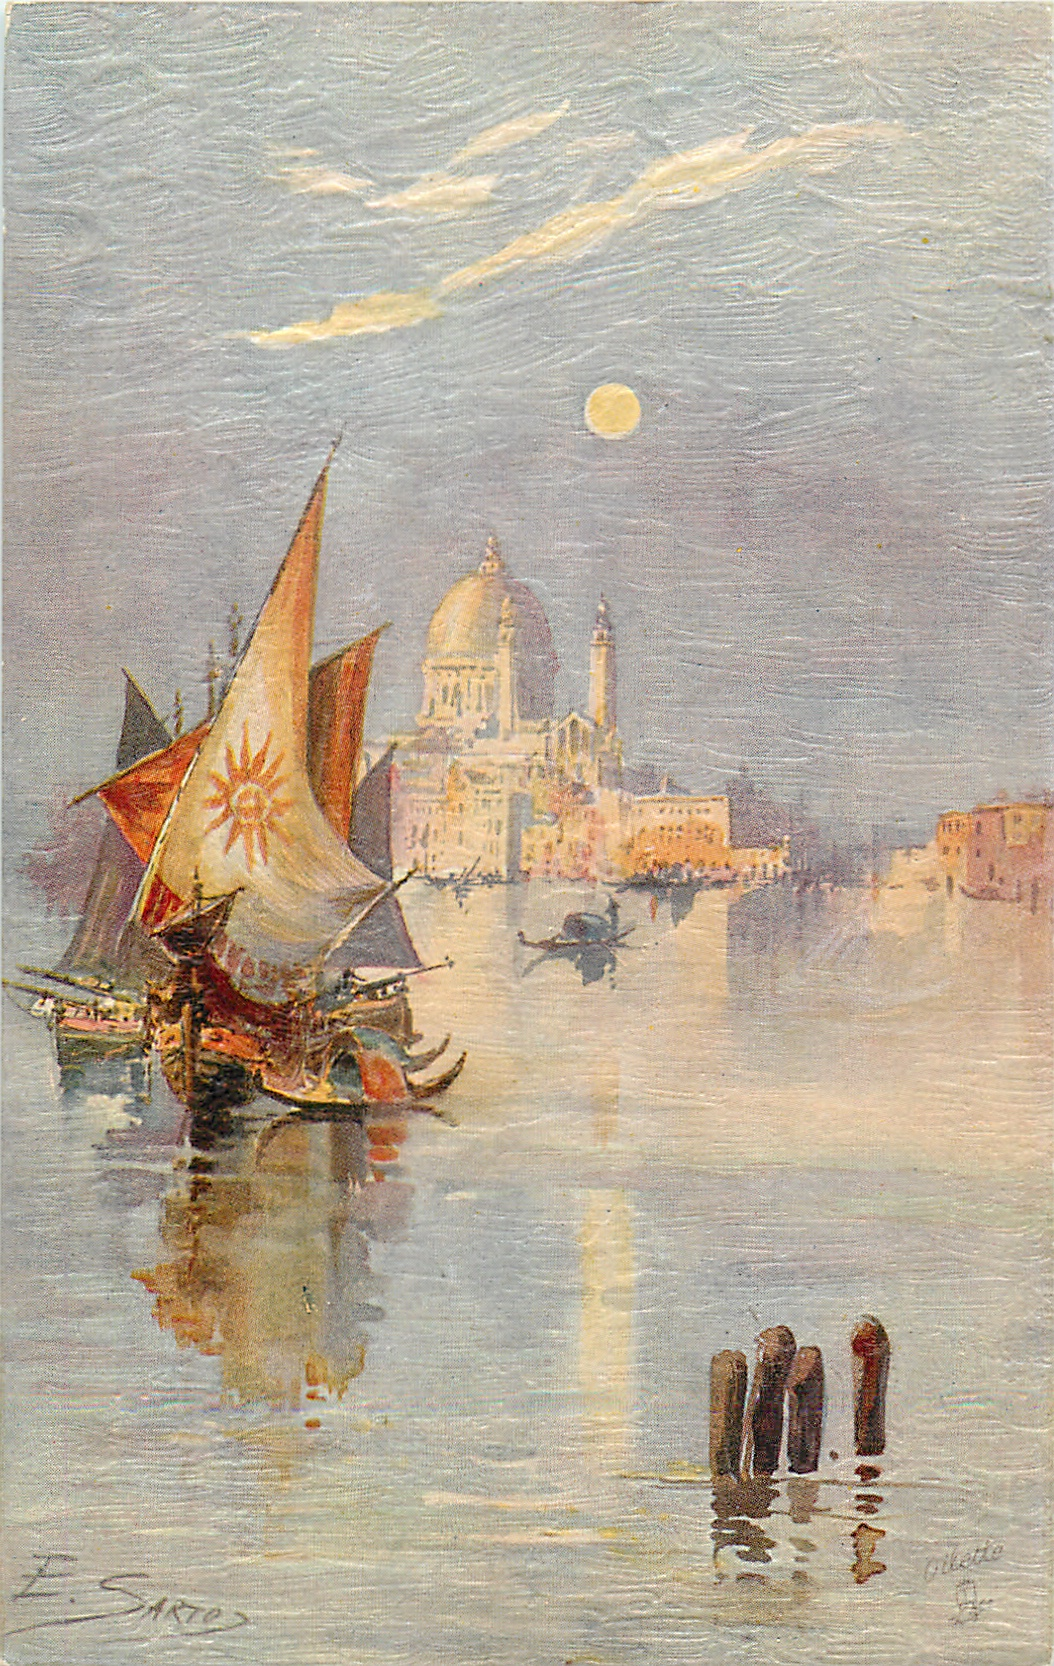 two sailboats left center, city behind with large dome, gondola behind/right of sailboats, four post lower right